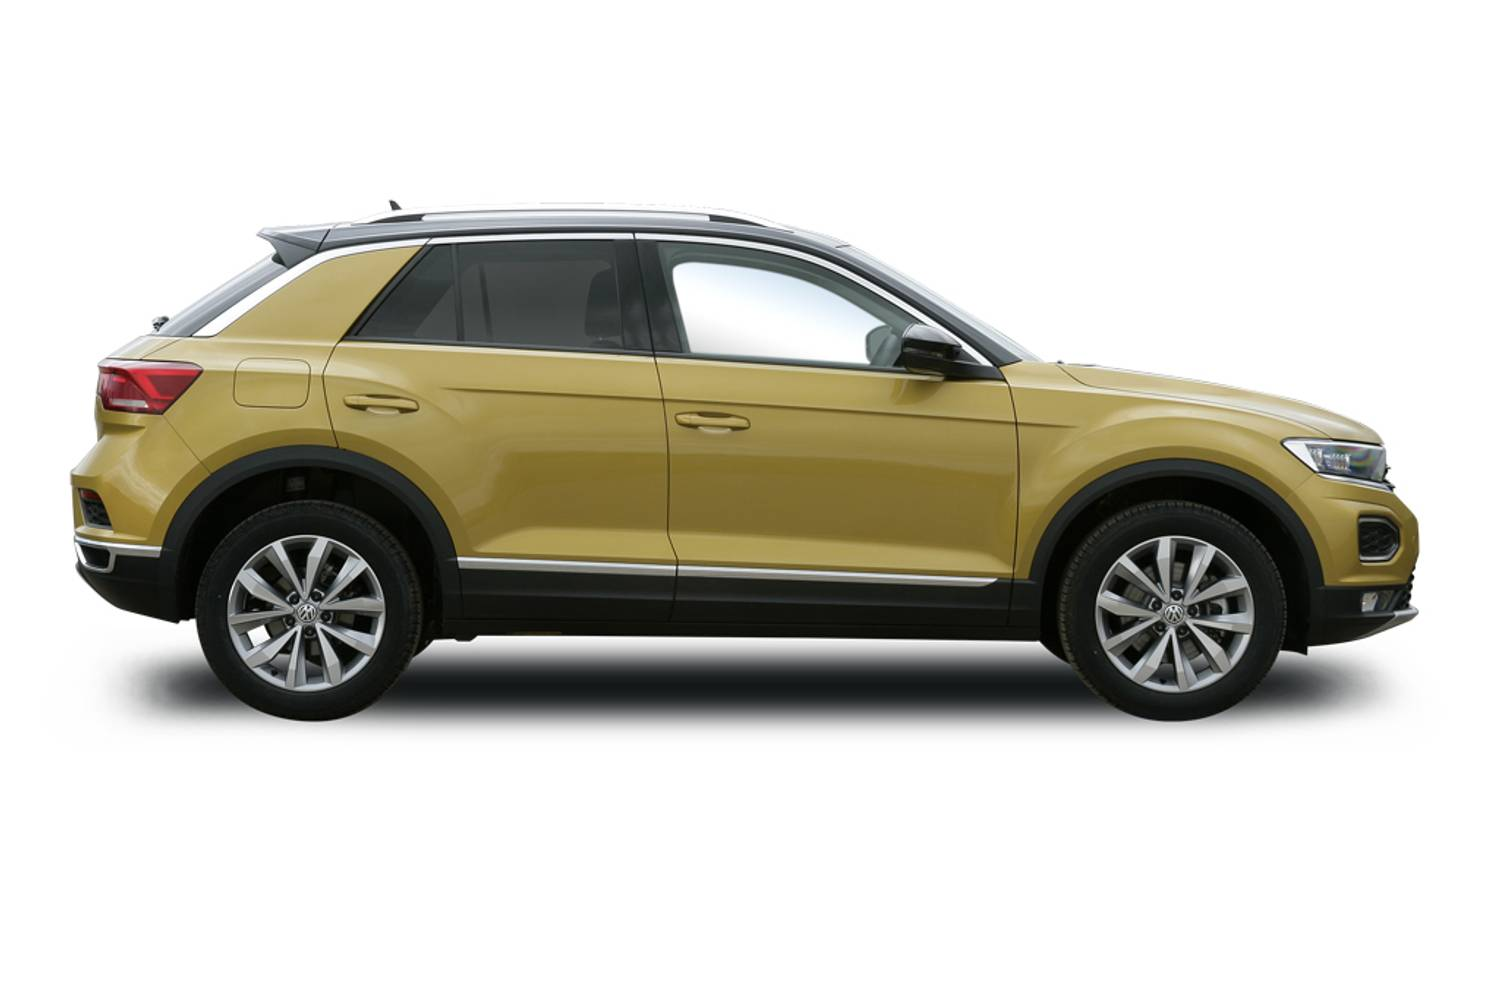 Volkswagen T-Roc 1.5 TSI ACT Advanced DSG dimensione ...